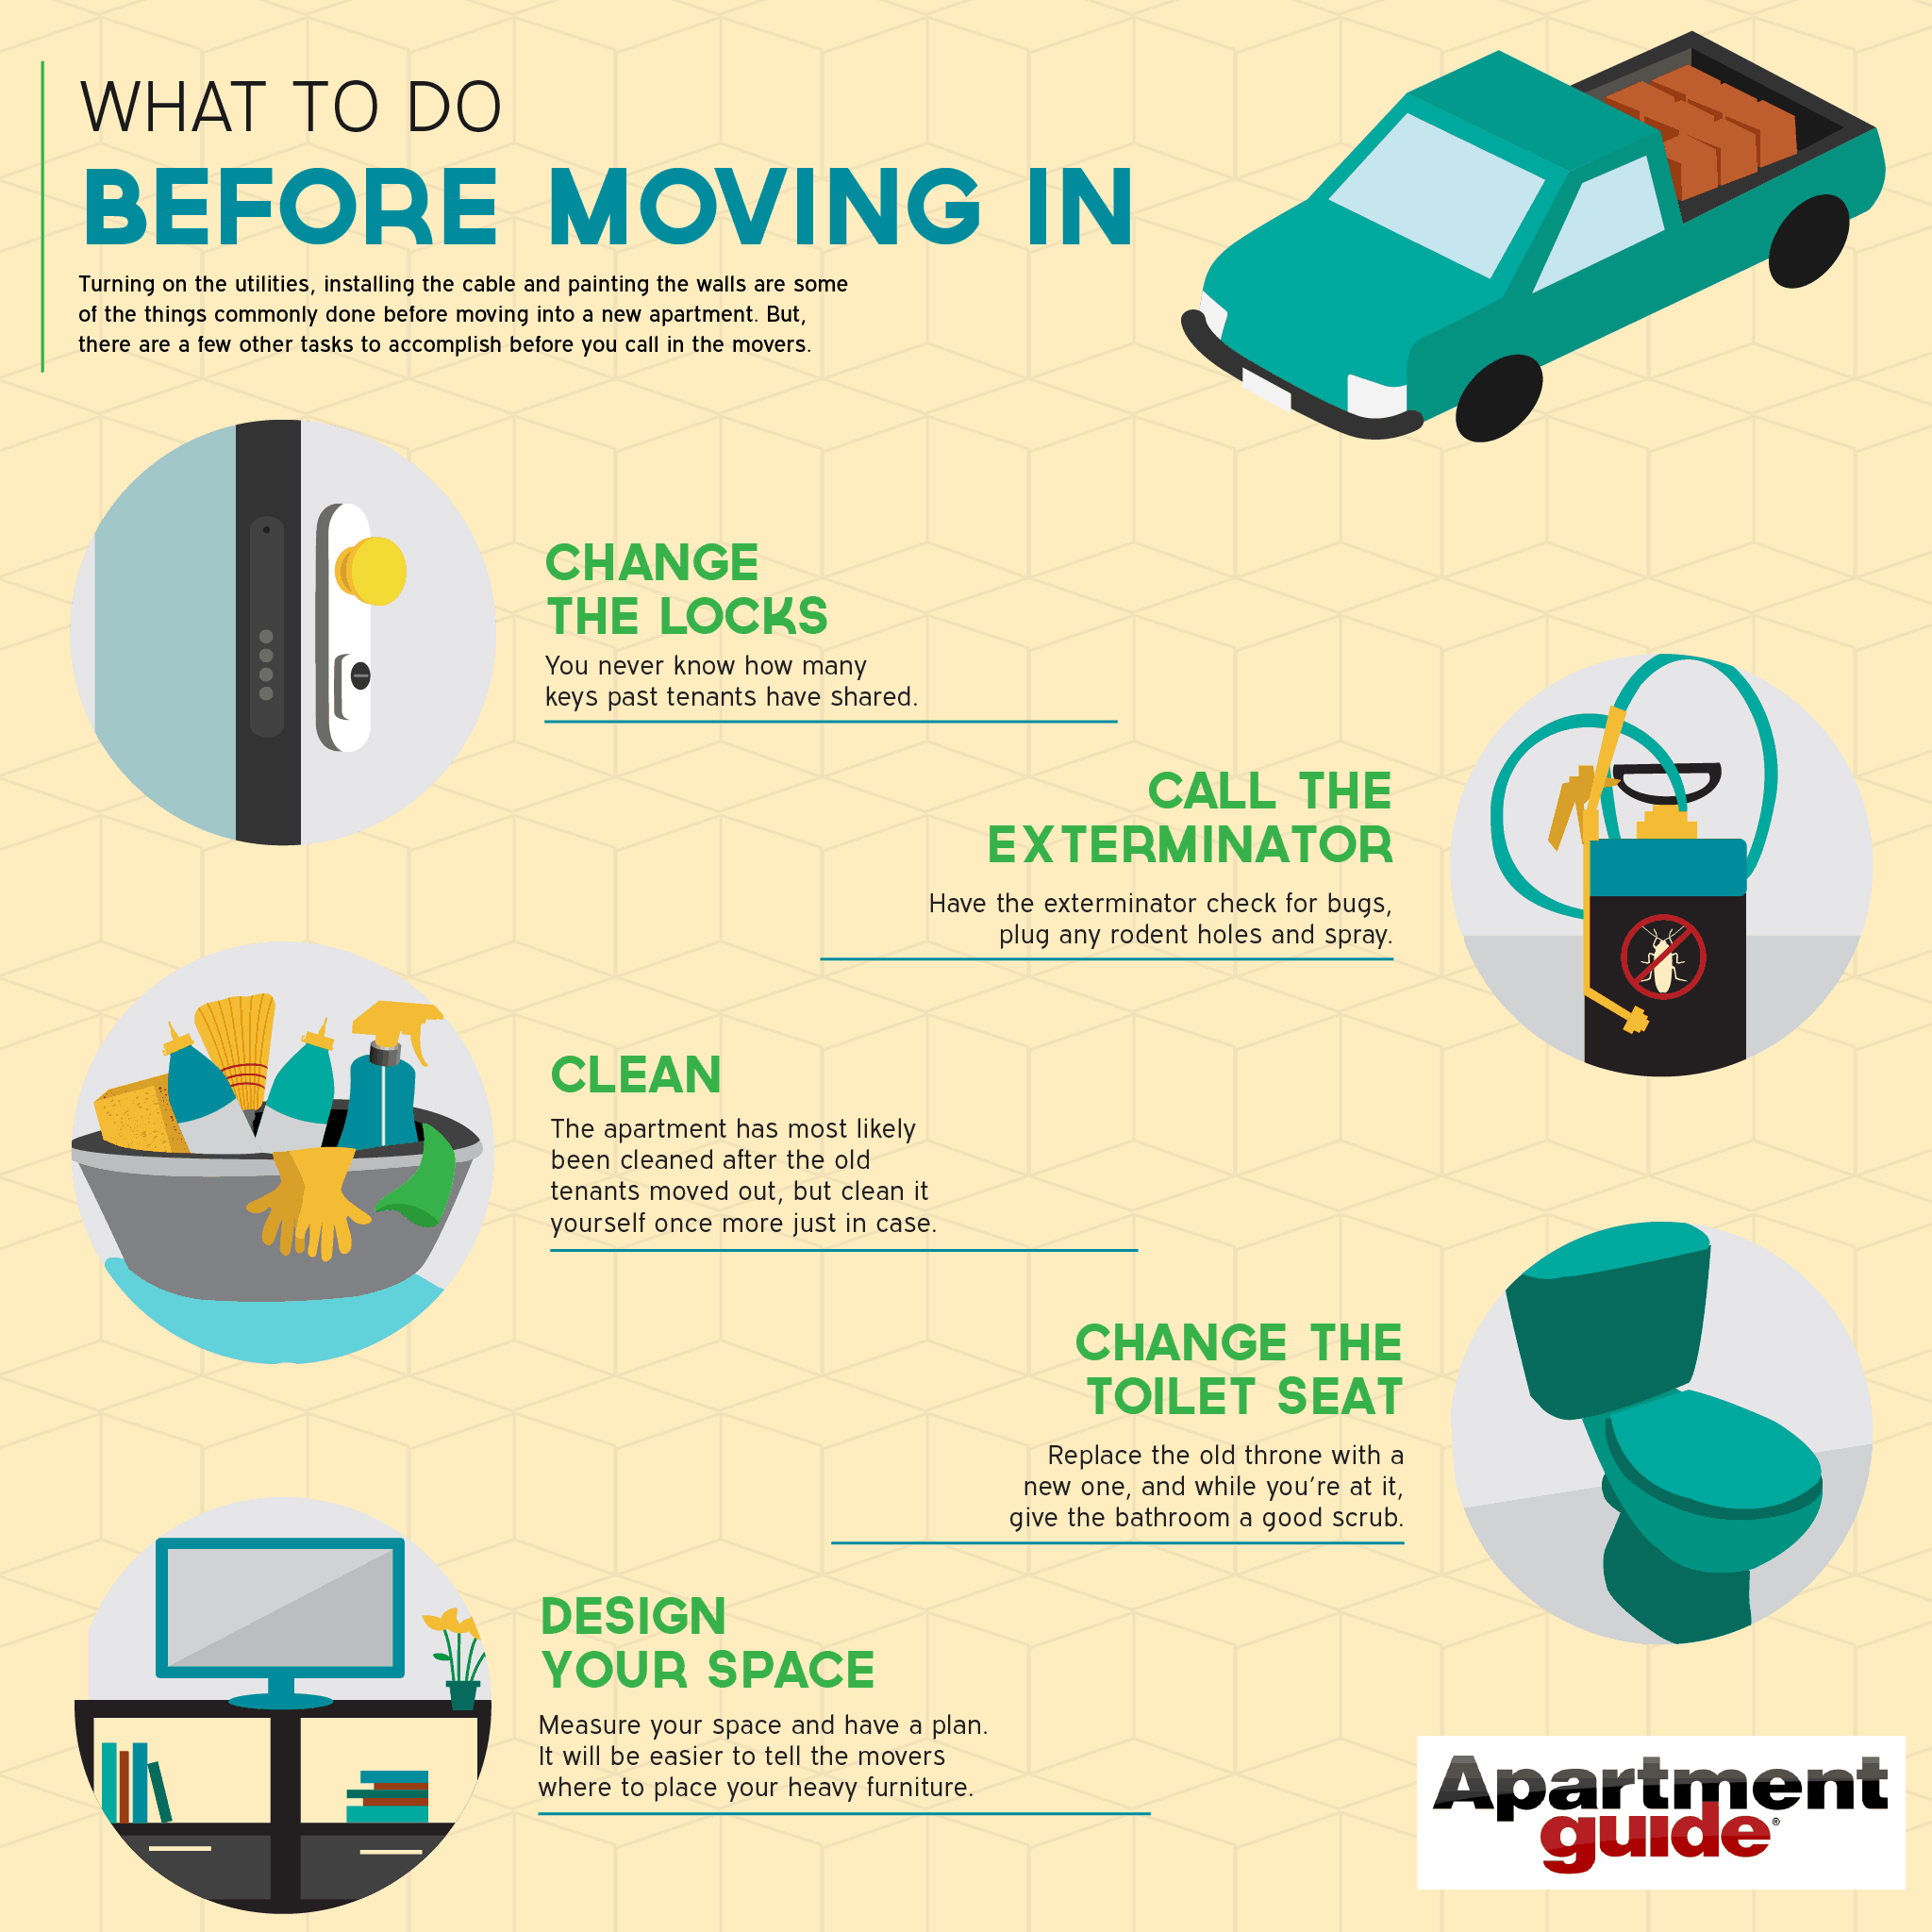 Home Design App Neighbors What To Do Before Moving In Infographic Apartmentguide Com